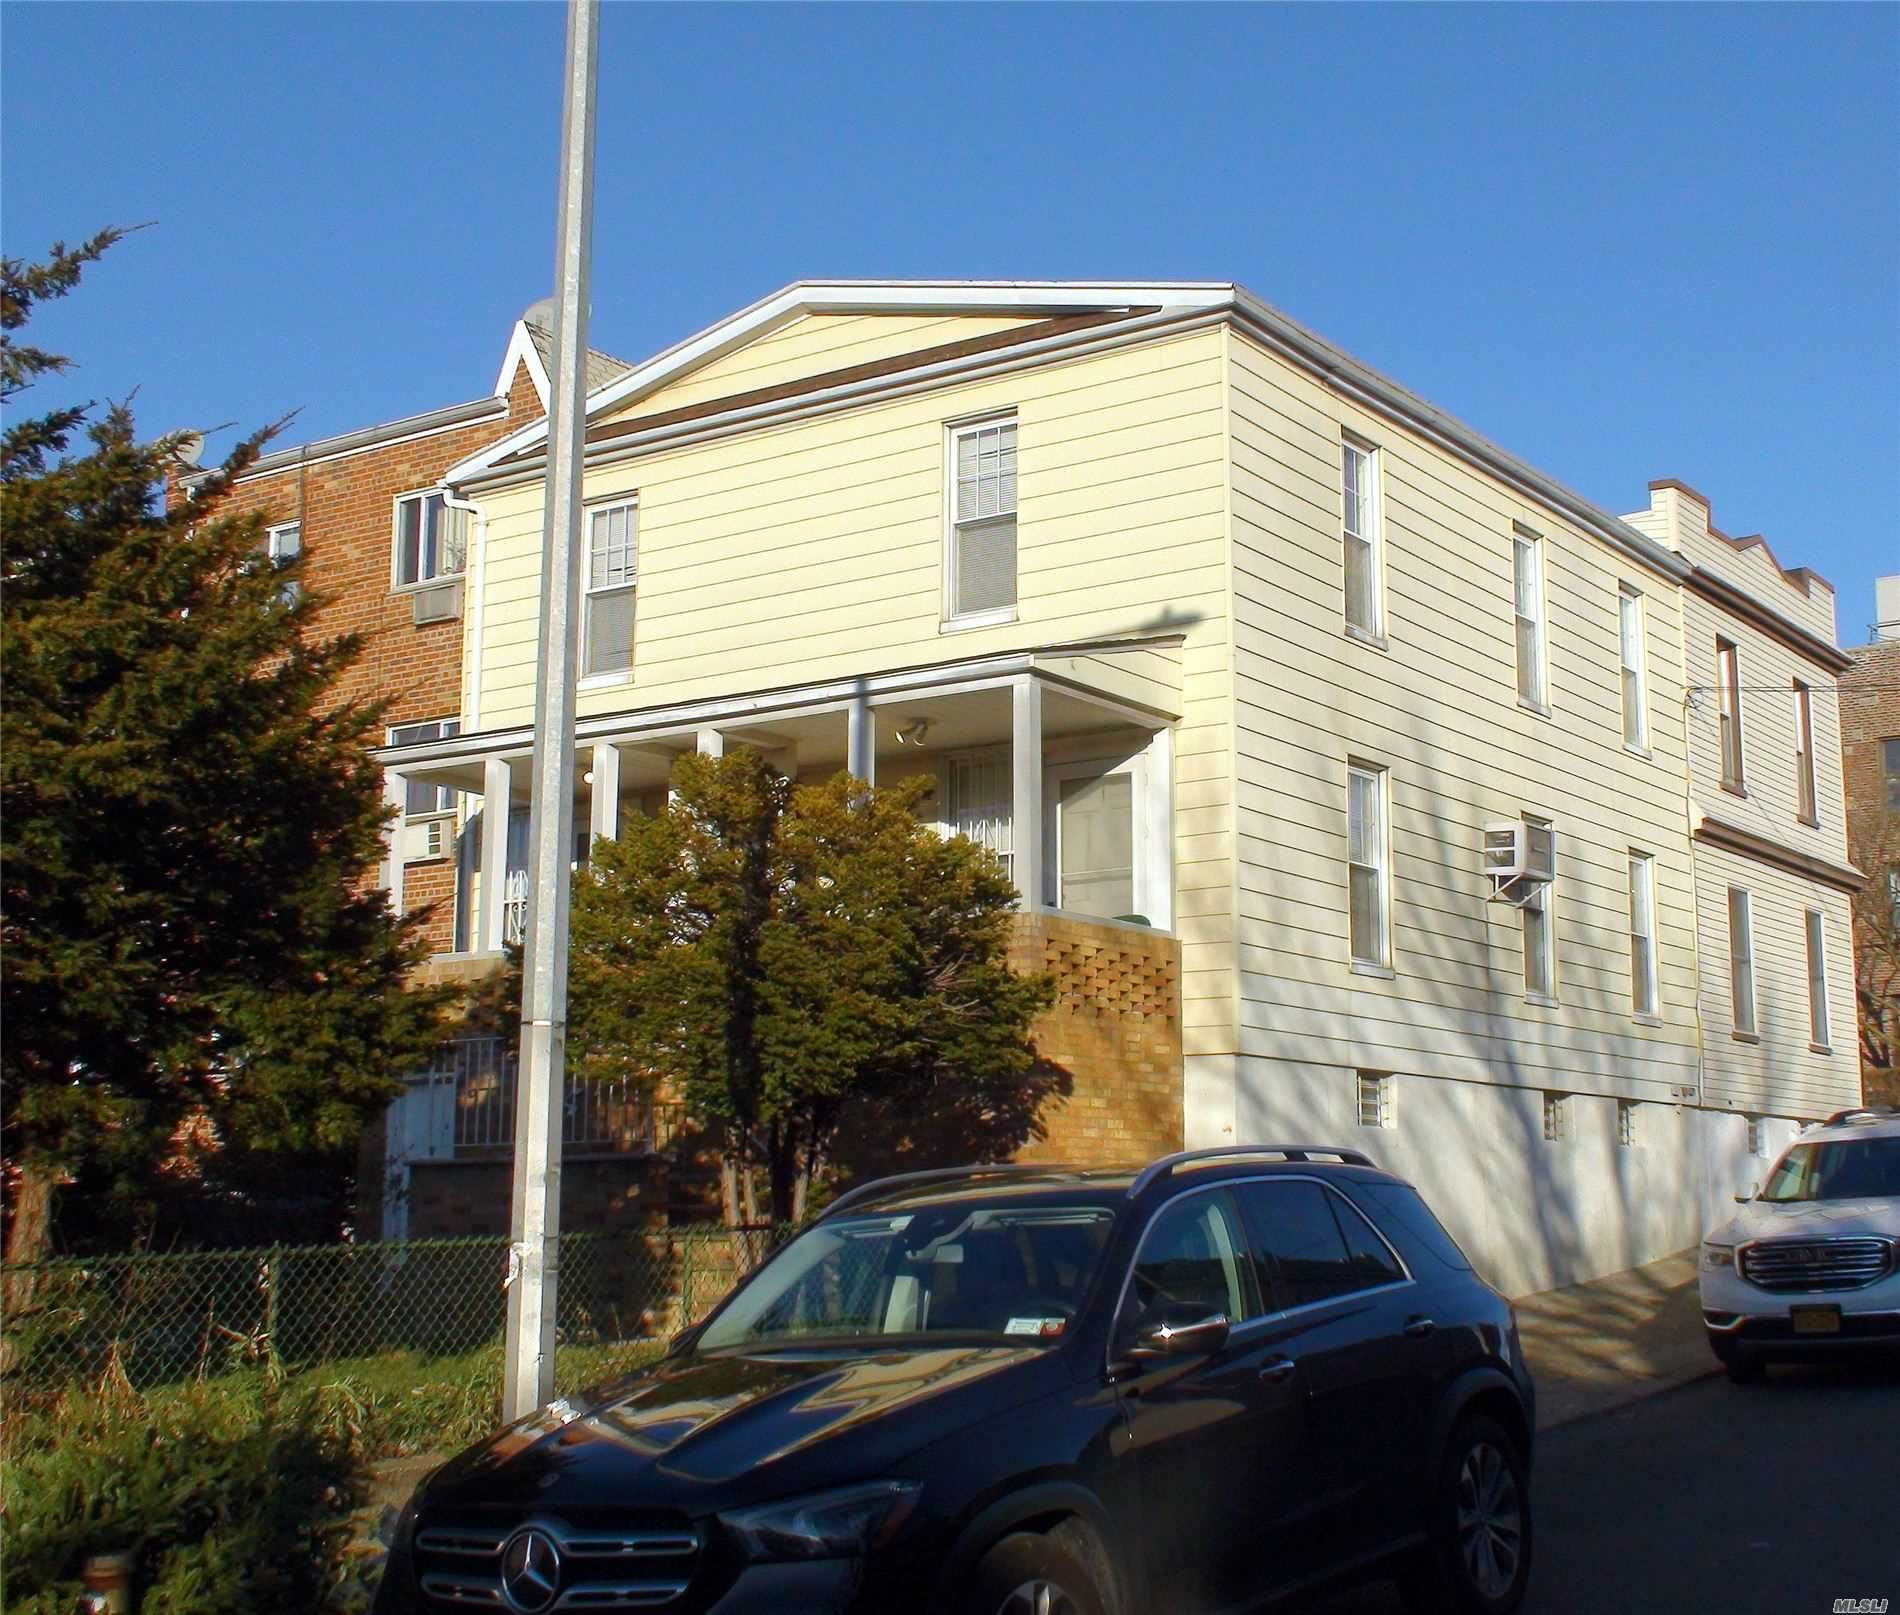 60-49 59th Road, Maspeth, NY 11378 - MLS#: 3193382